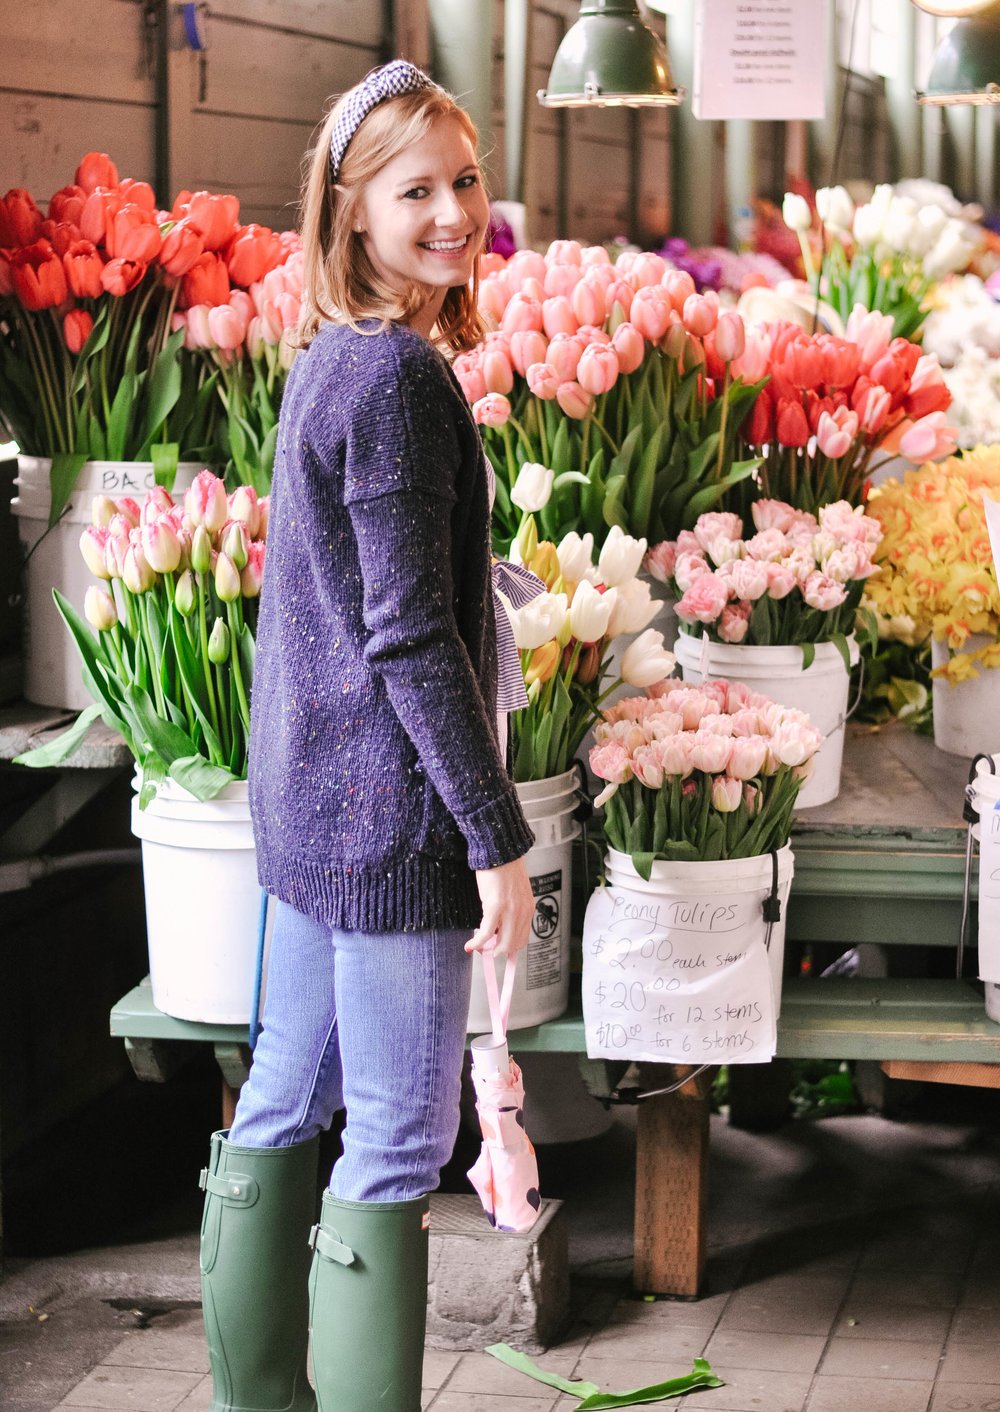 Woman smiling in front of colorful tulips